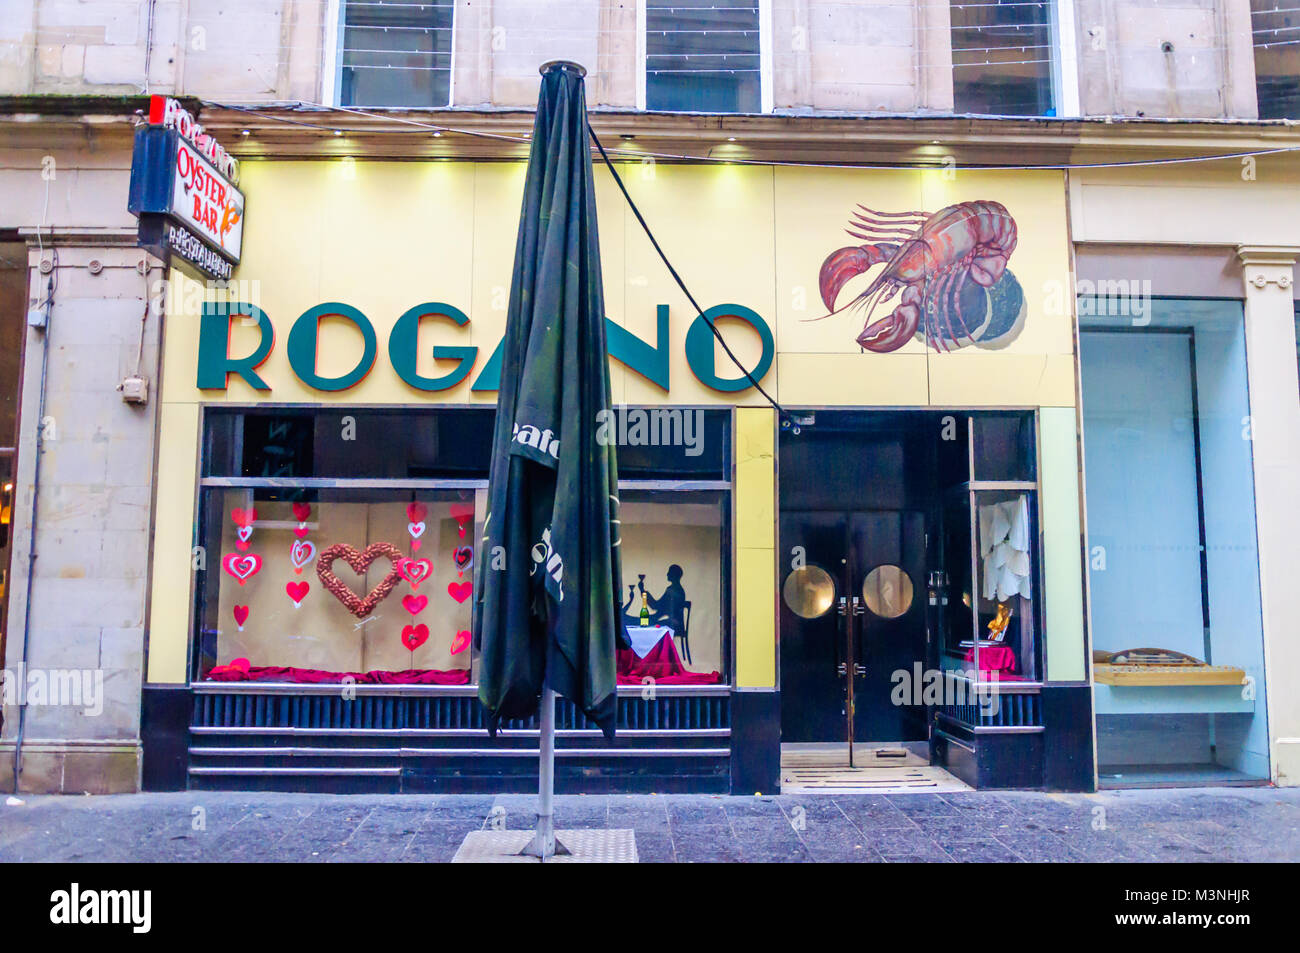 Exterior view of the famous Rogano Seafood Restaurant, Exchange Place, Glasgow, Scotland, UK - Stock Image